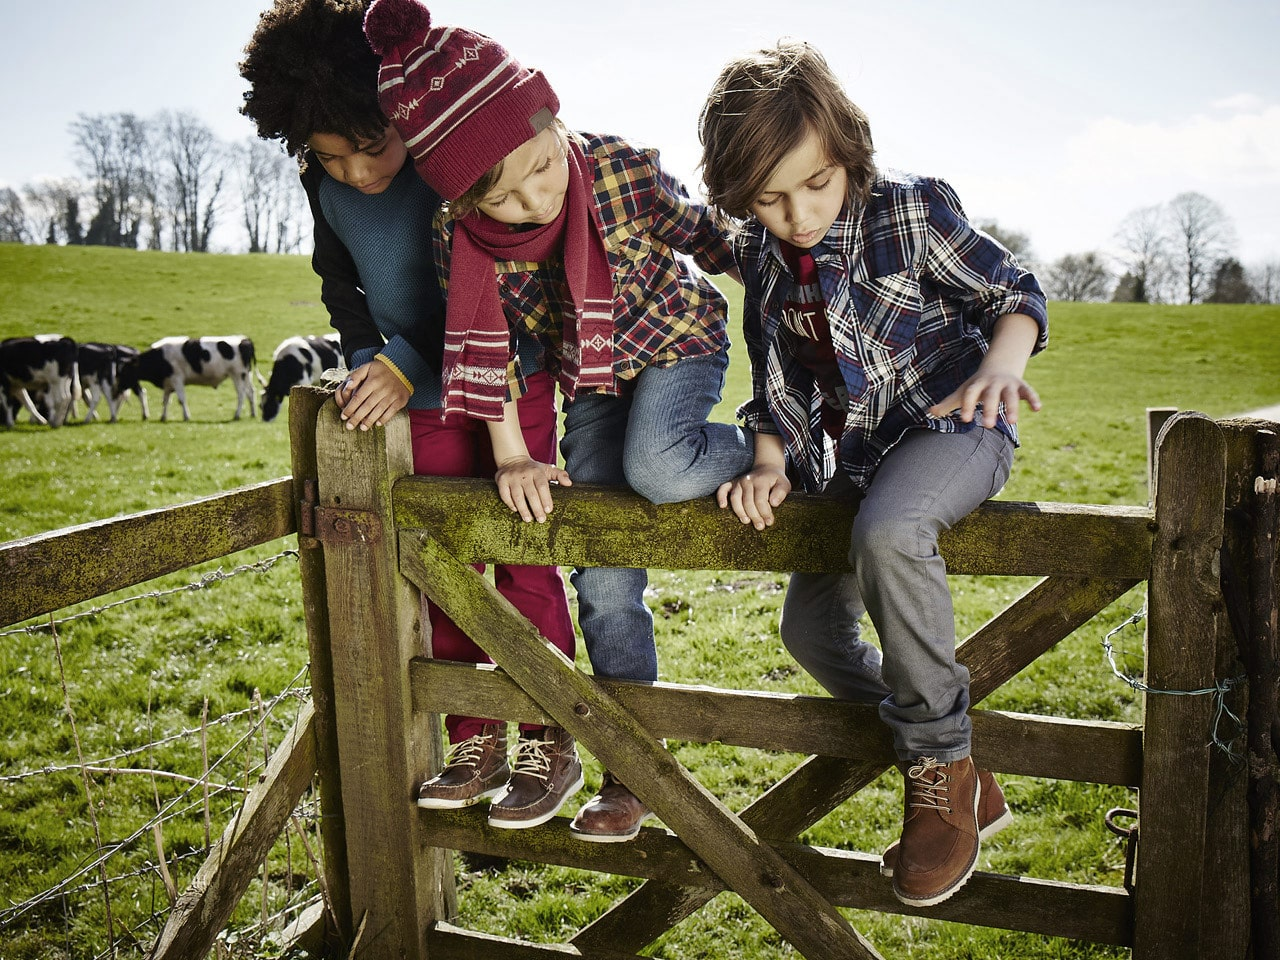 argos-kids-fashion-stylist-hair-makeup-manchester23